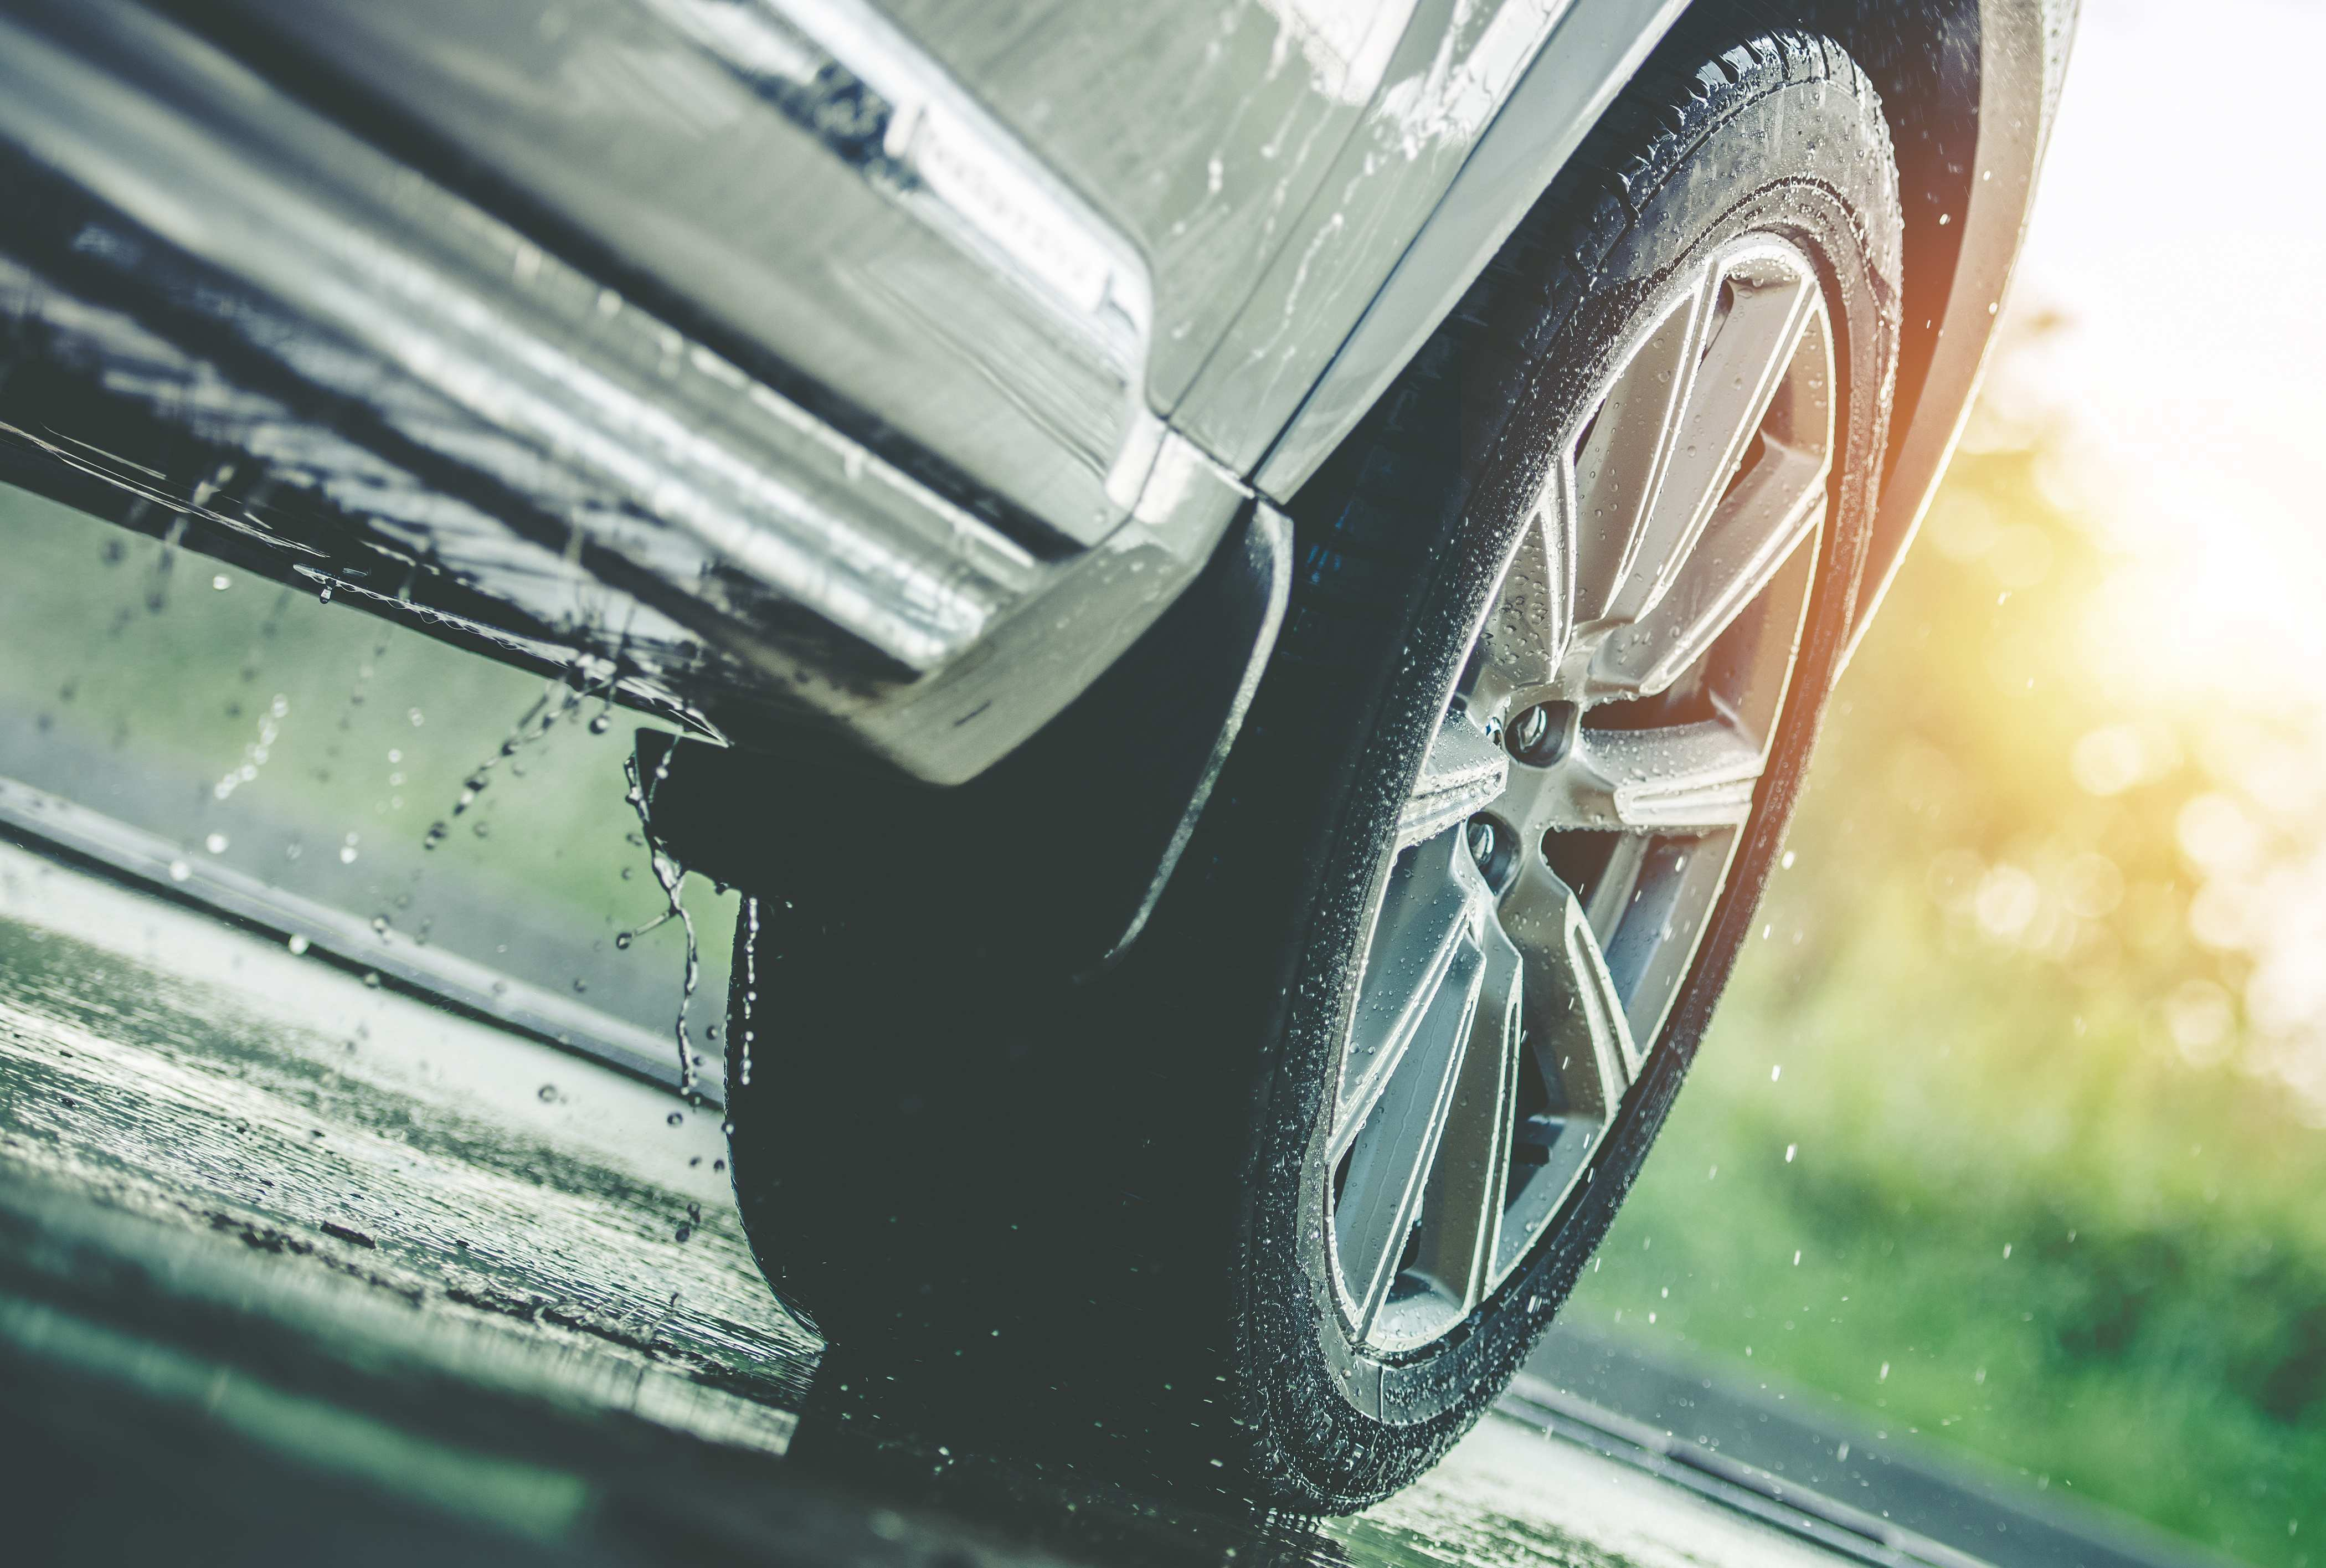 essential-car-care-tips-for-rainy-day-content-image